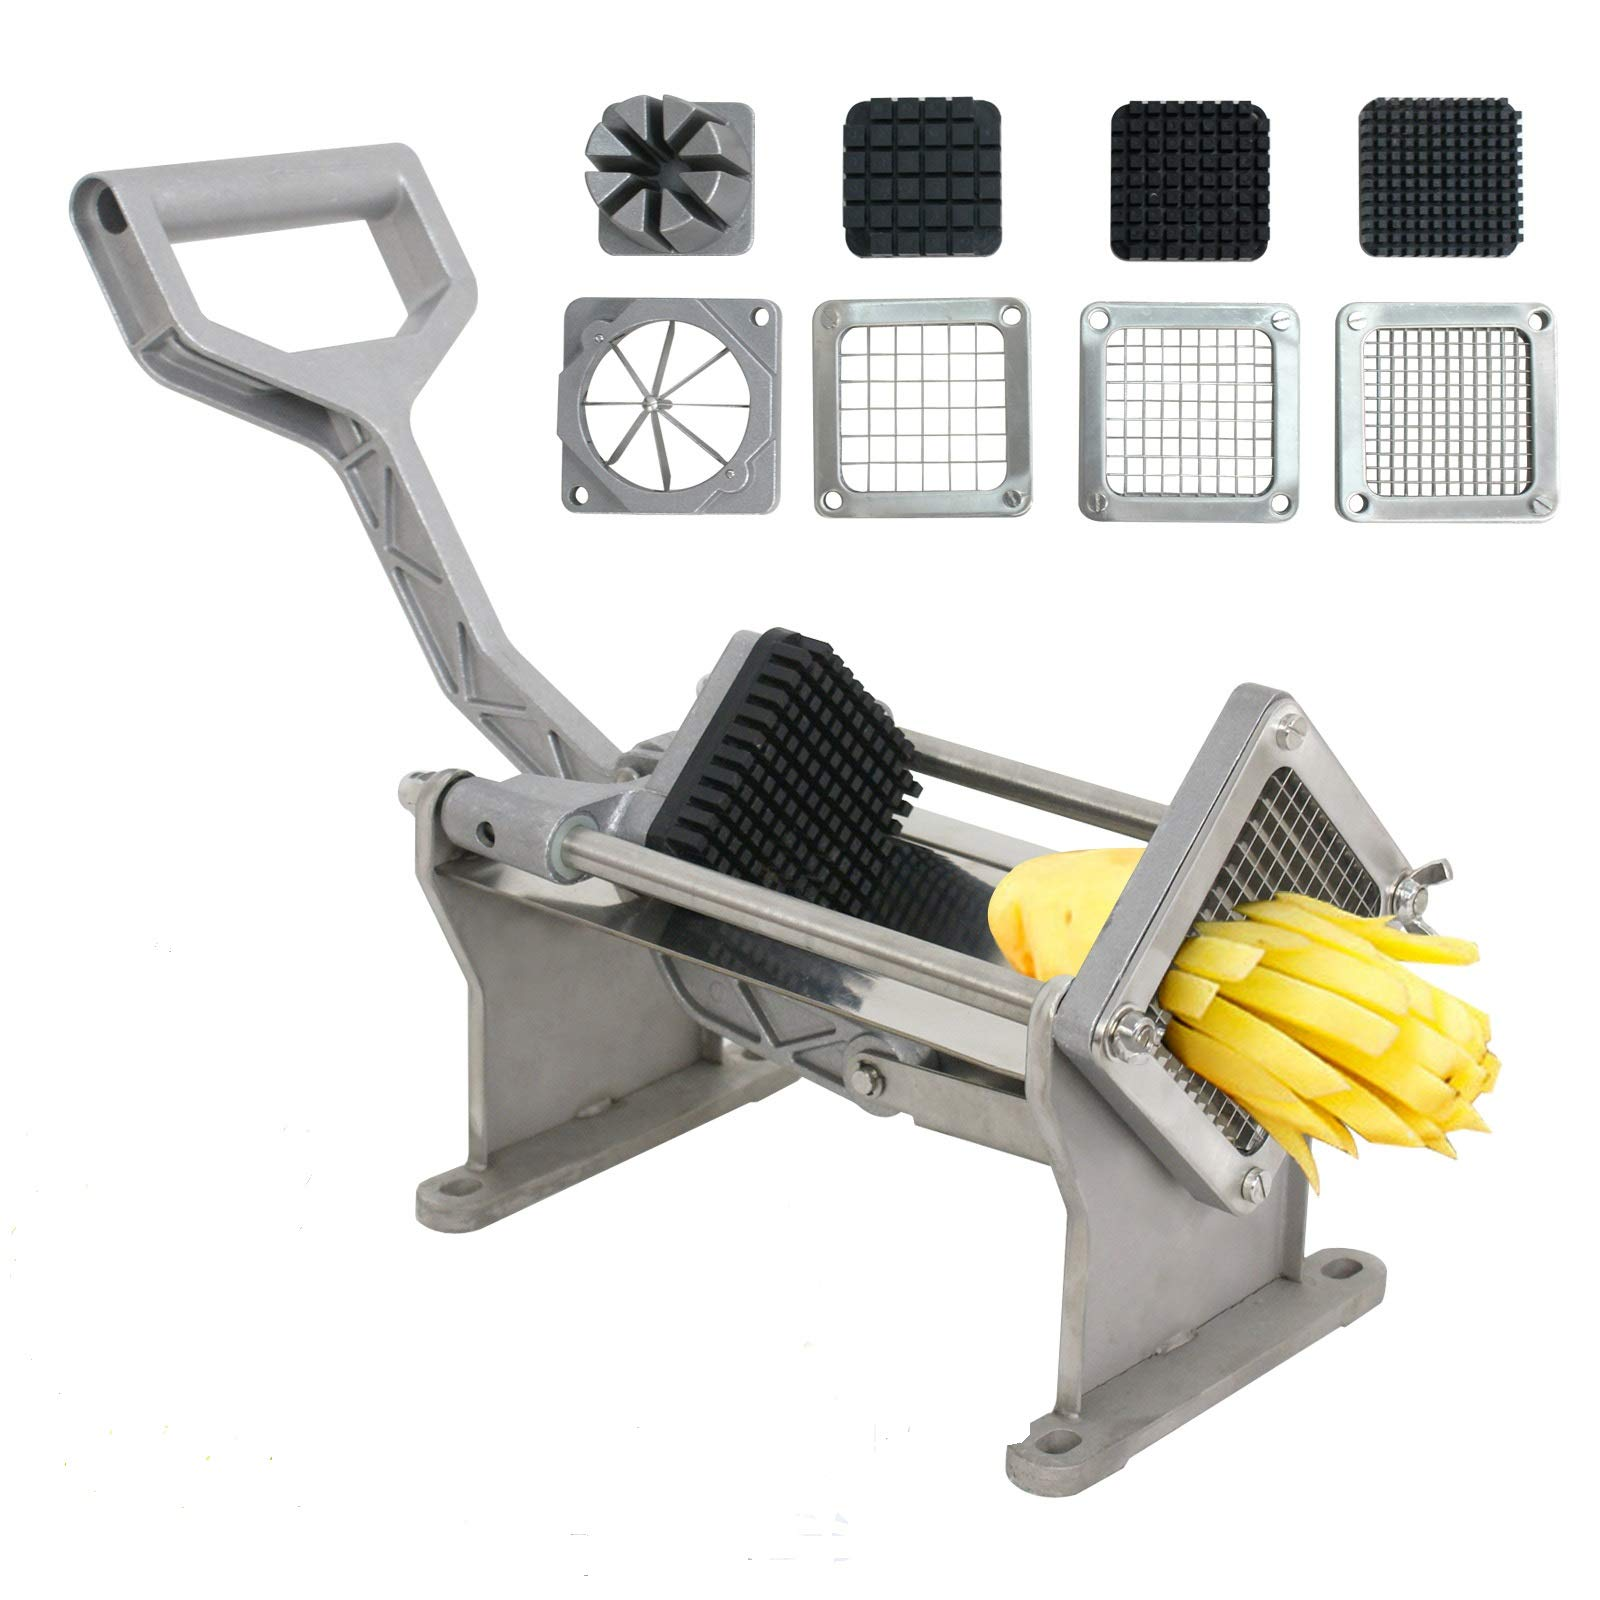 ZENY Heavy Duty French Fry Potato Cutter Fruit Vegetable Slicer Chopper Commercial Grade w/ 4 Blades